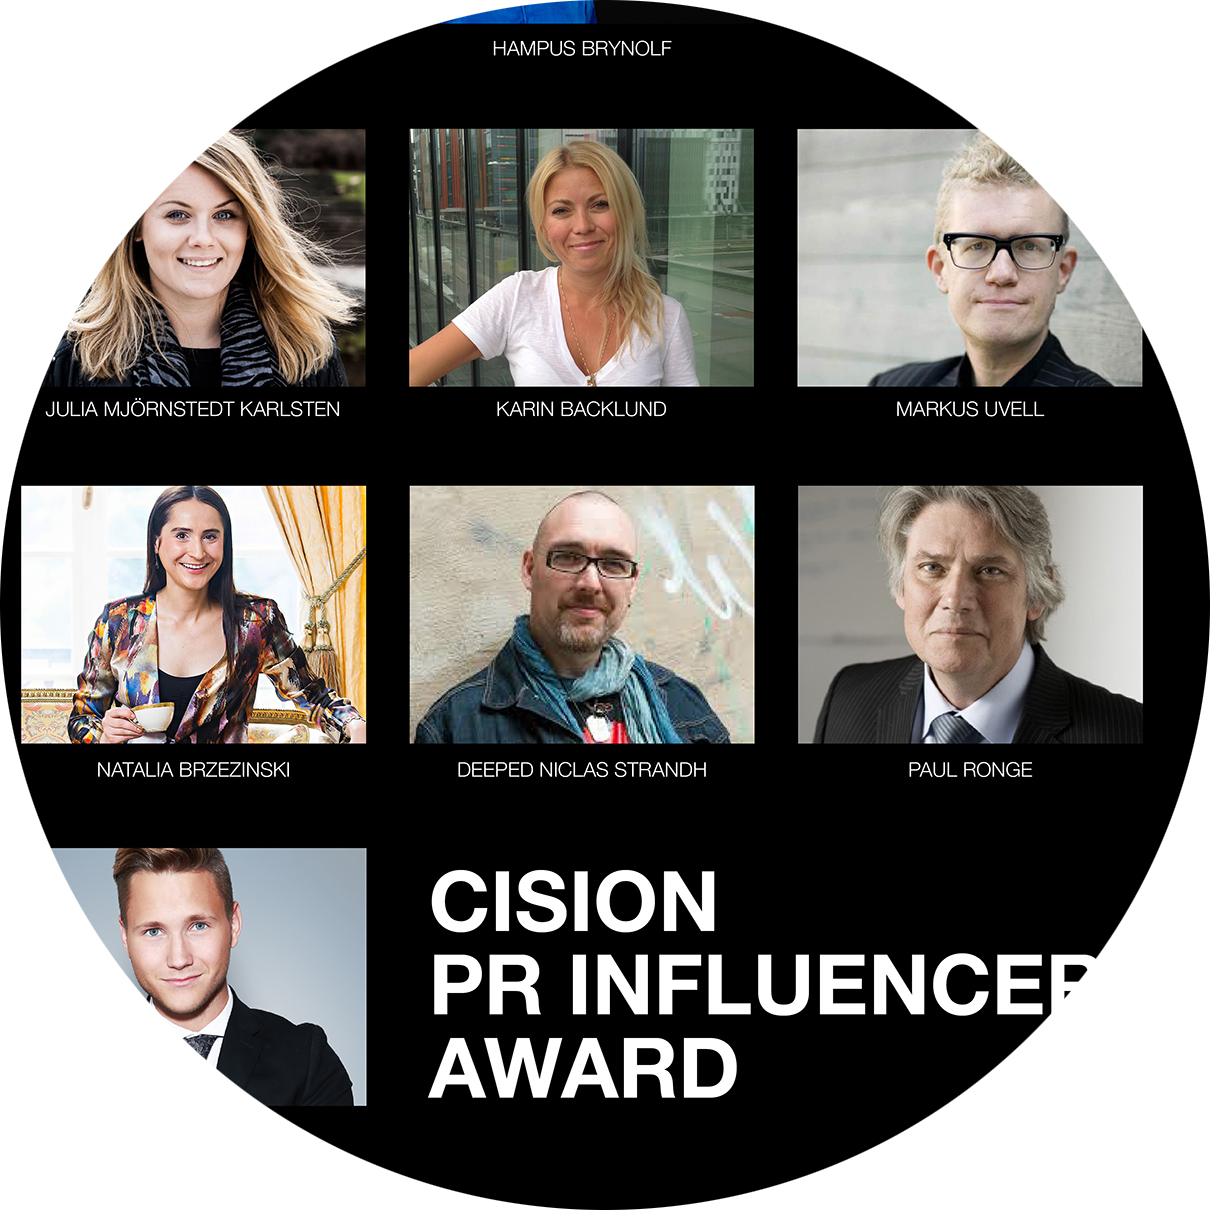 Cision PR Influencer Award